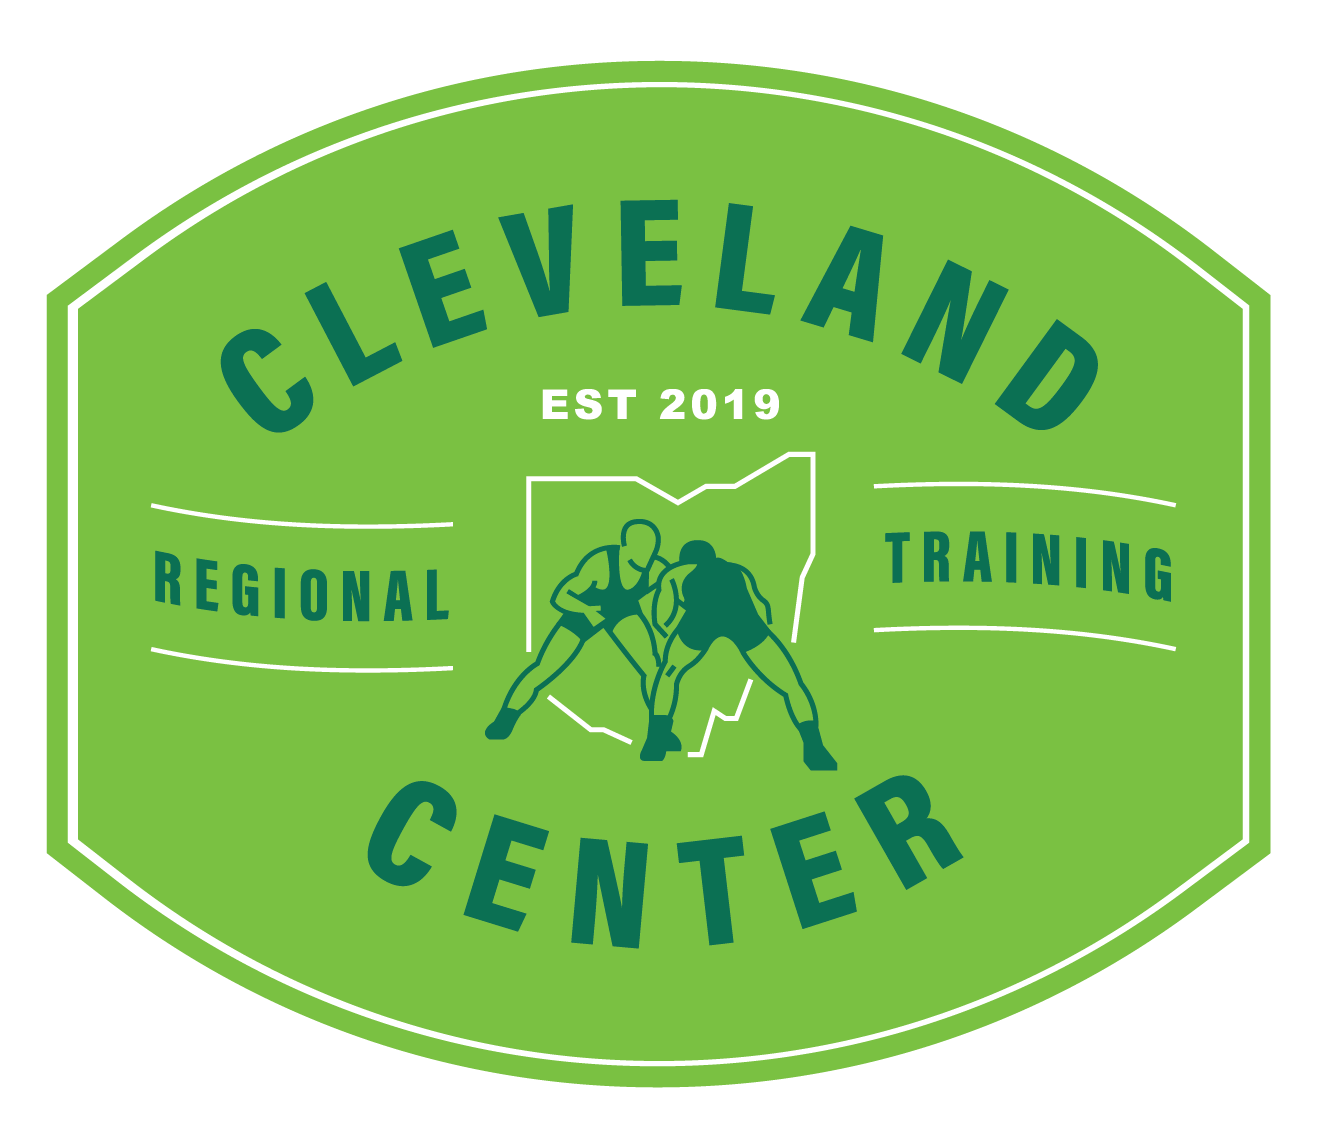 The Cleveland Regional Training Center